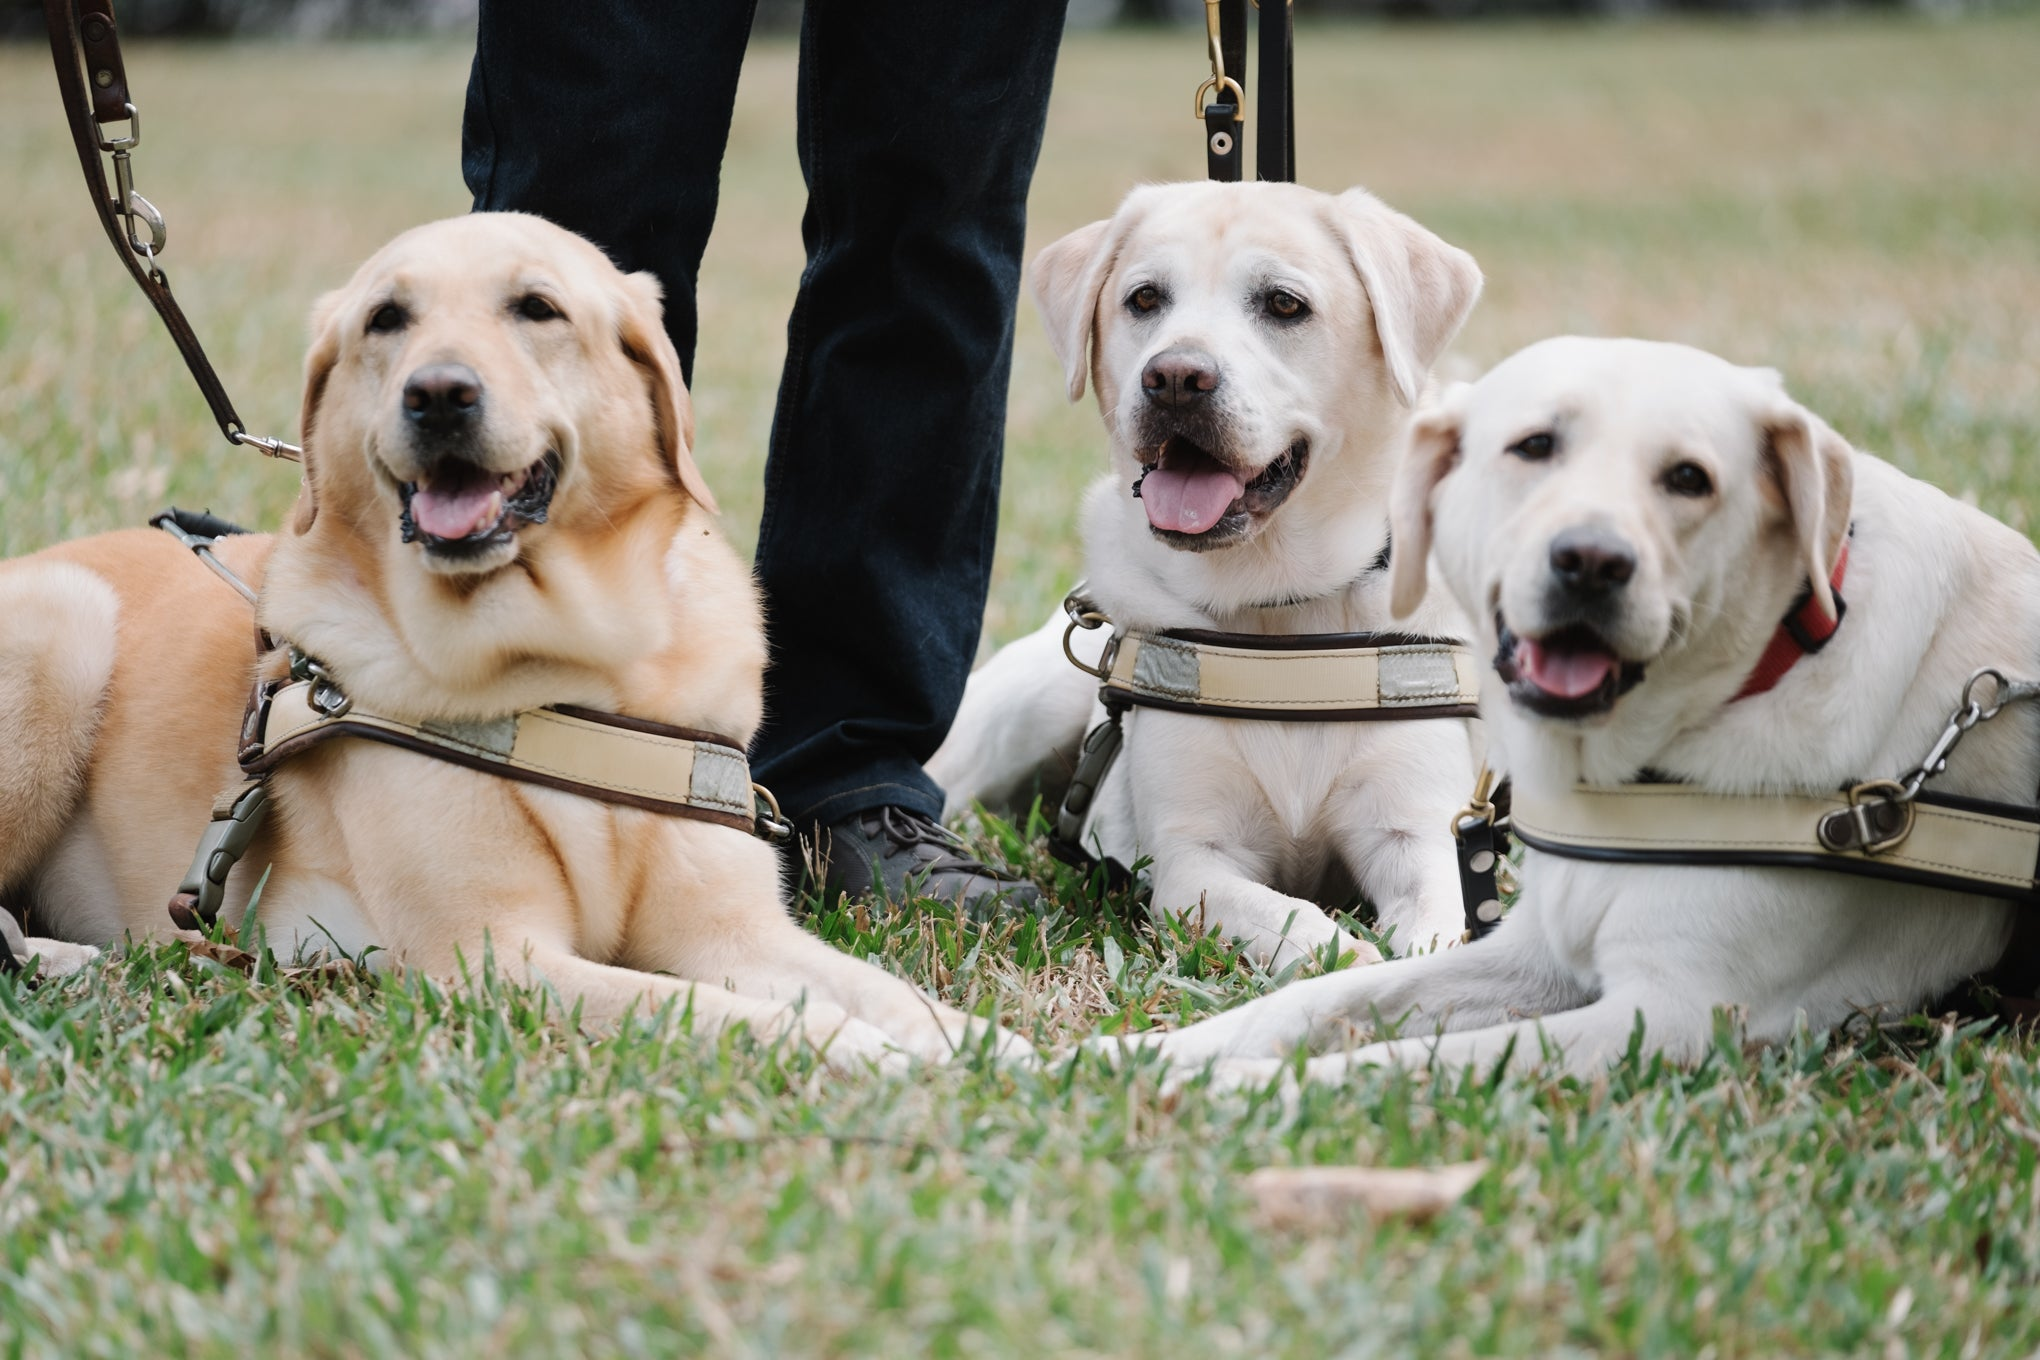 Annie's Story: A Guide Dog Could Change My Life